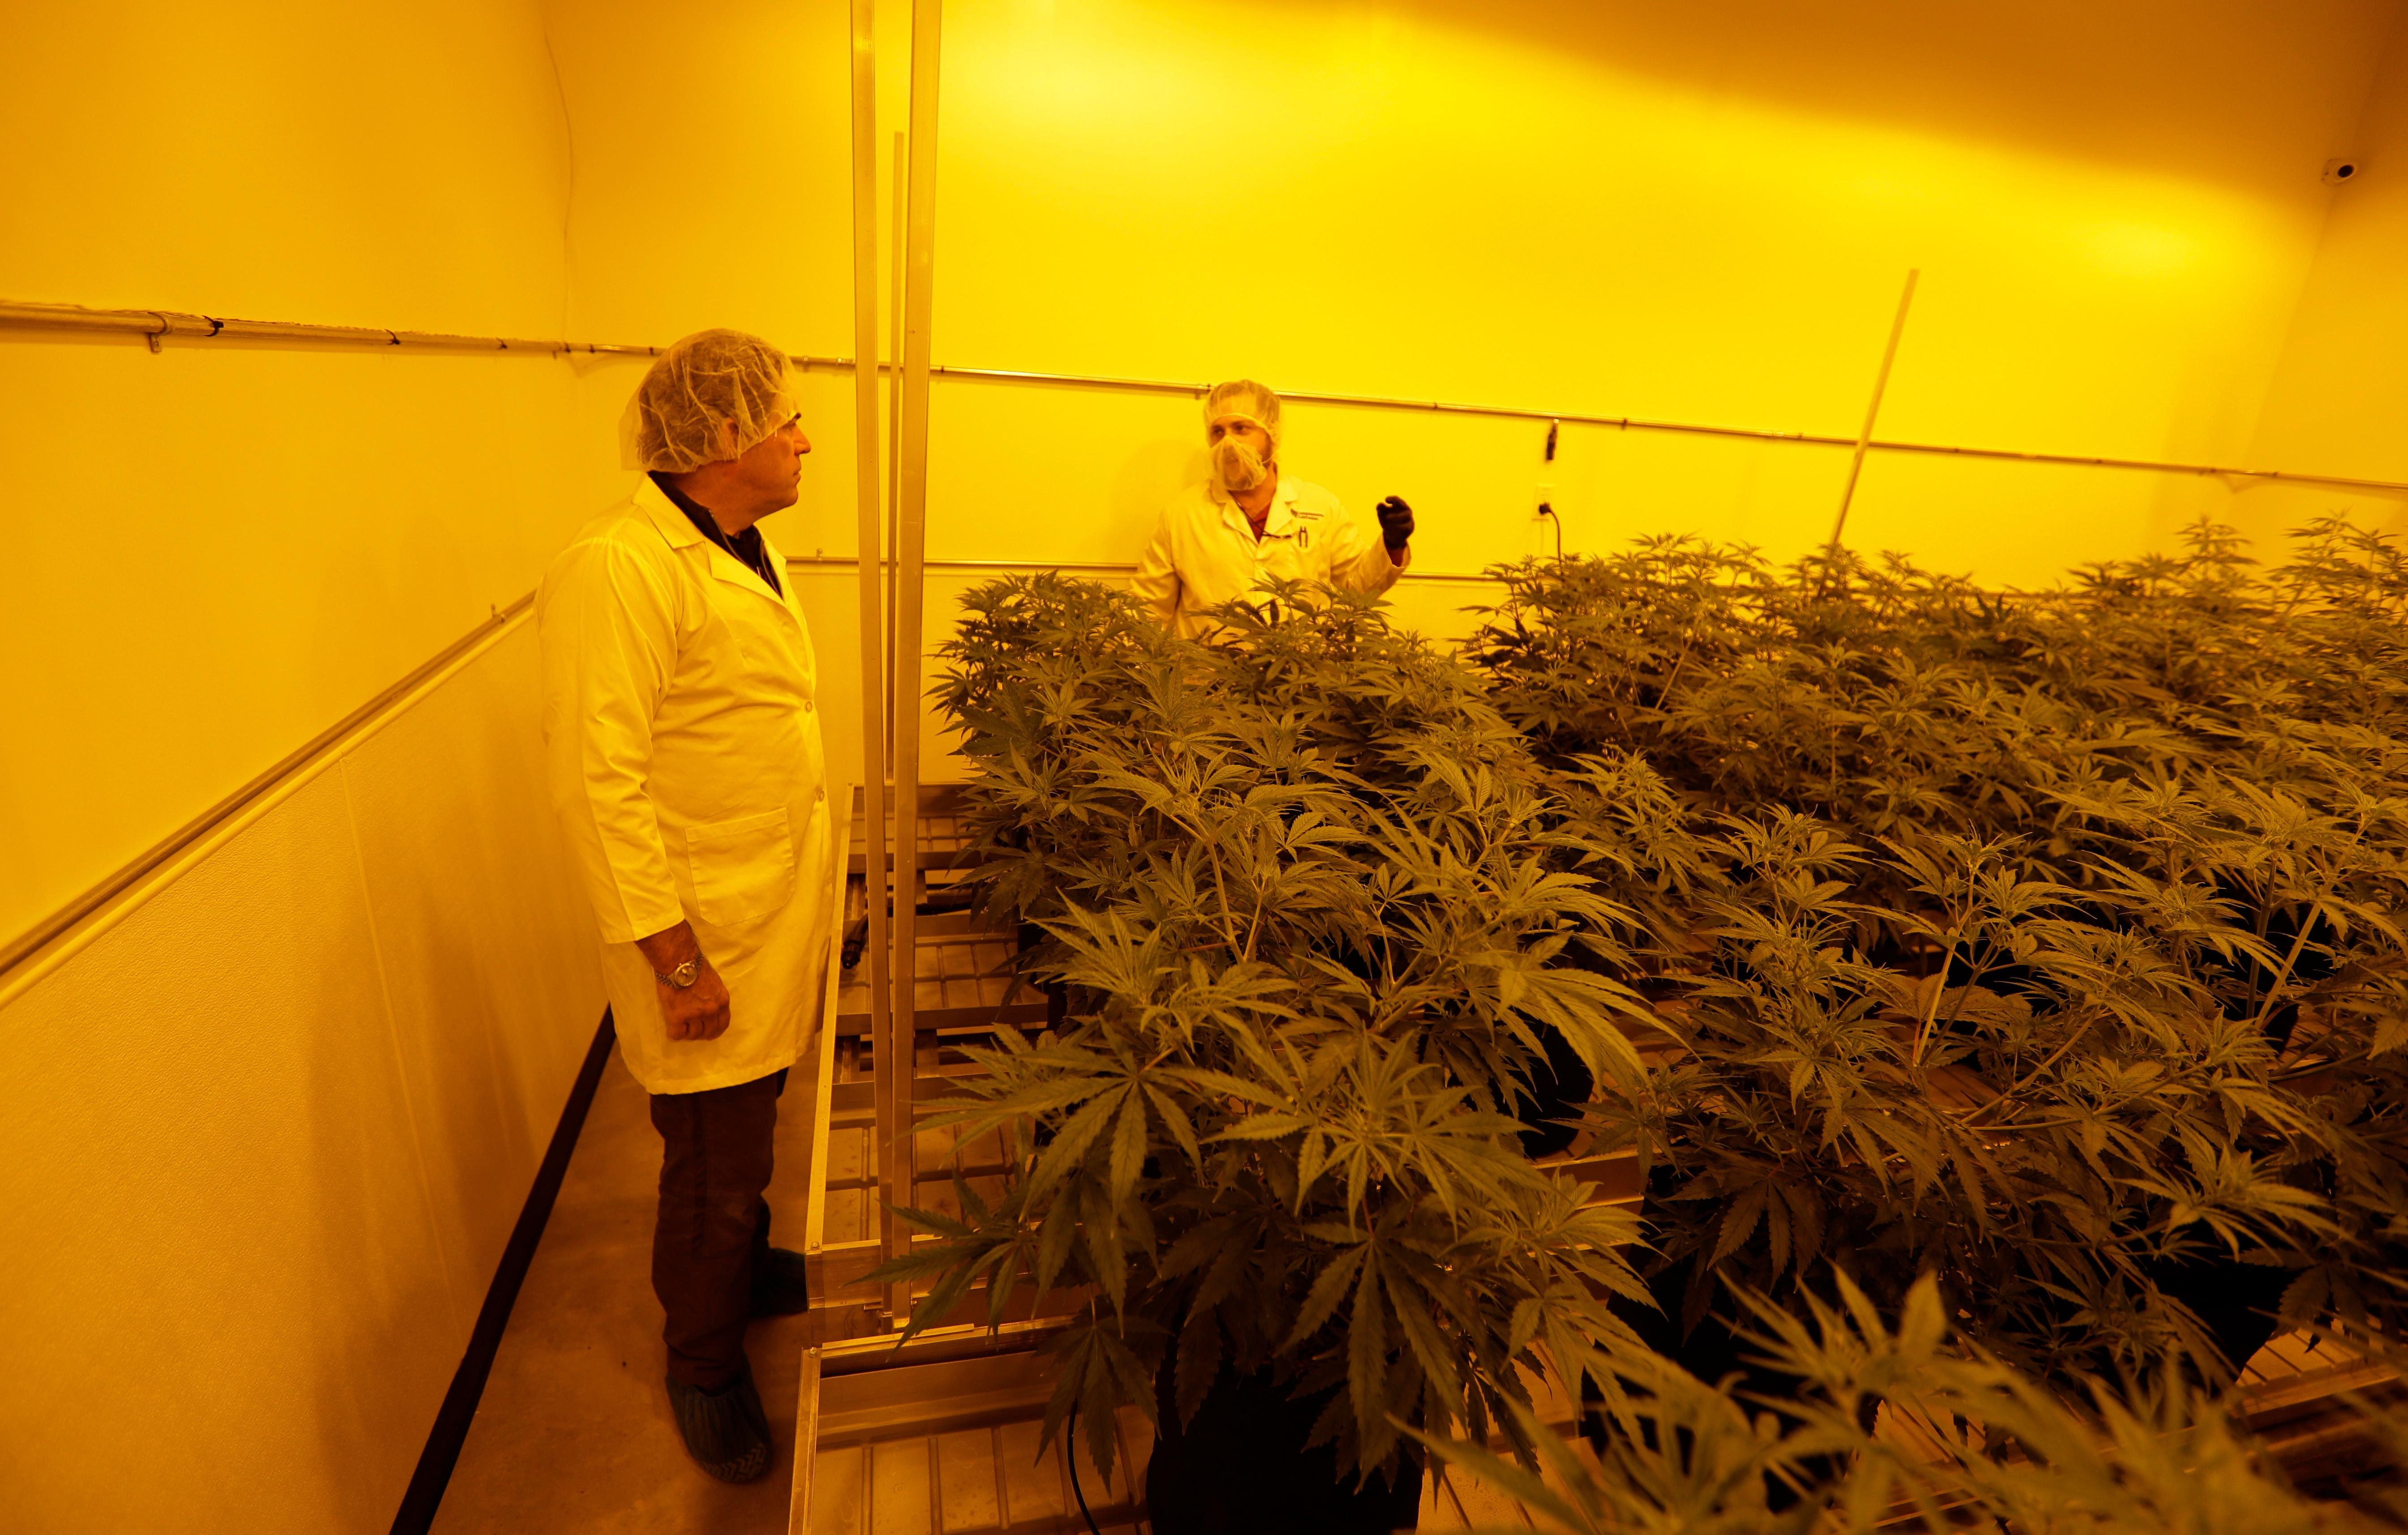 Morris Denton, left, and Dalton Edwards look over marijuana plants in a flowering room with sodium grow lights at Compassionate Cultivation, Thursday, Dec. 14, 2017, in Manchaca, Texas. The license fees to grow in Texas are the highest in the U.S. at nearly $500,000 and the program is rolling out with just seven participating doctors in a state of 27 million people. And like other states, access is limited to a small pool of patients. (AP Photo/Eric Gay)